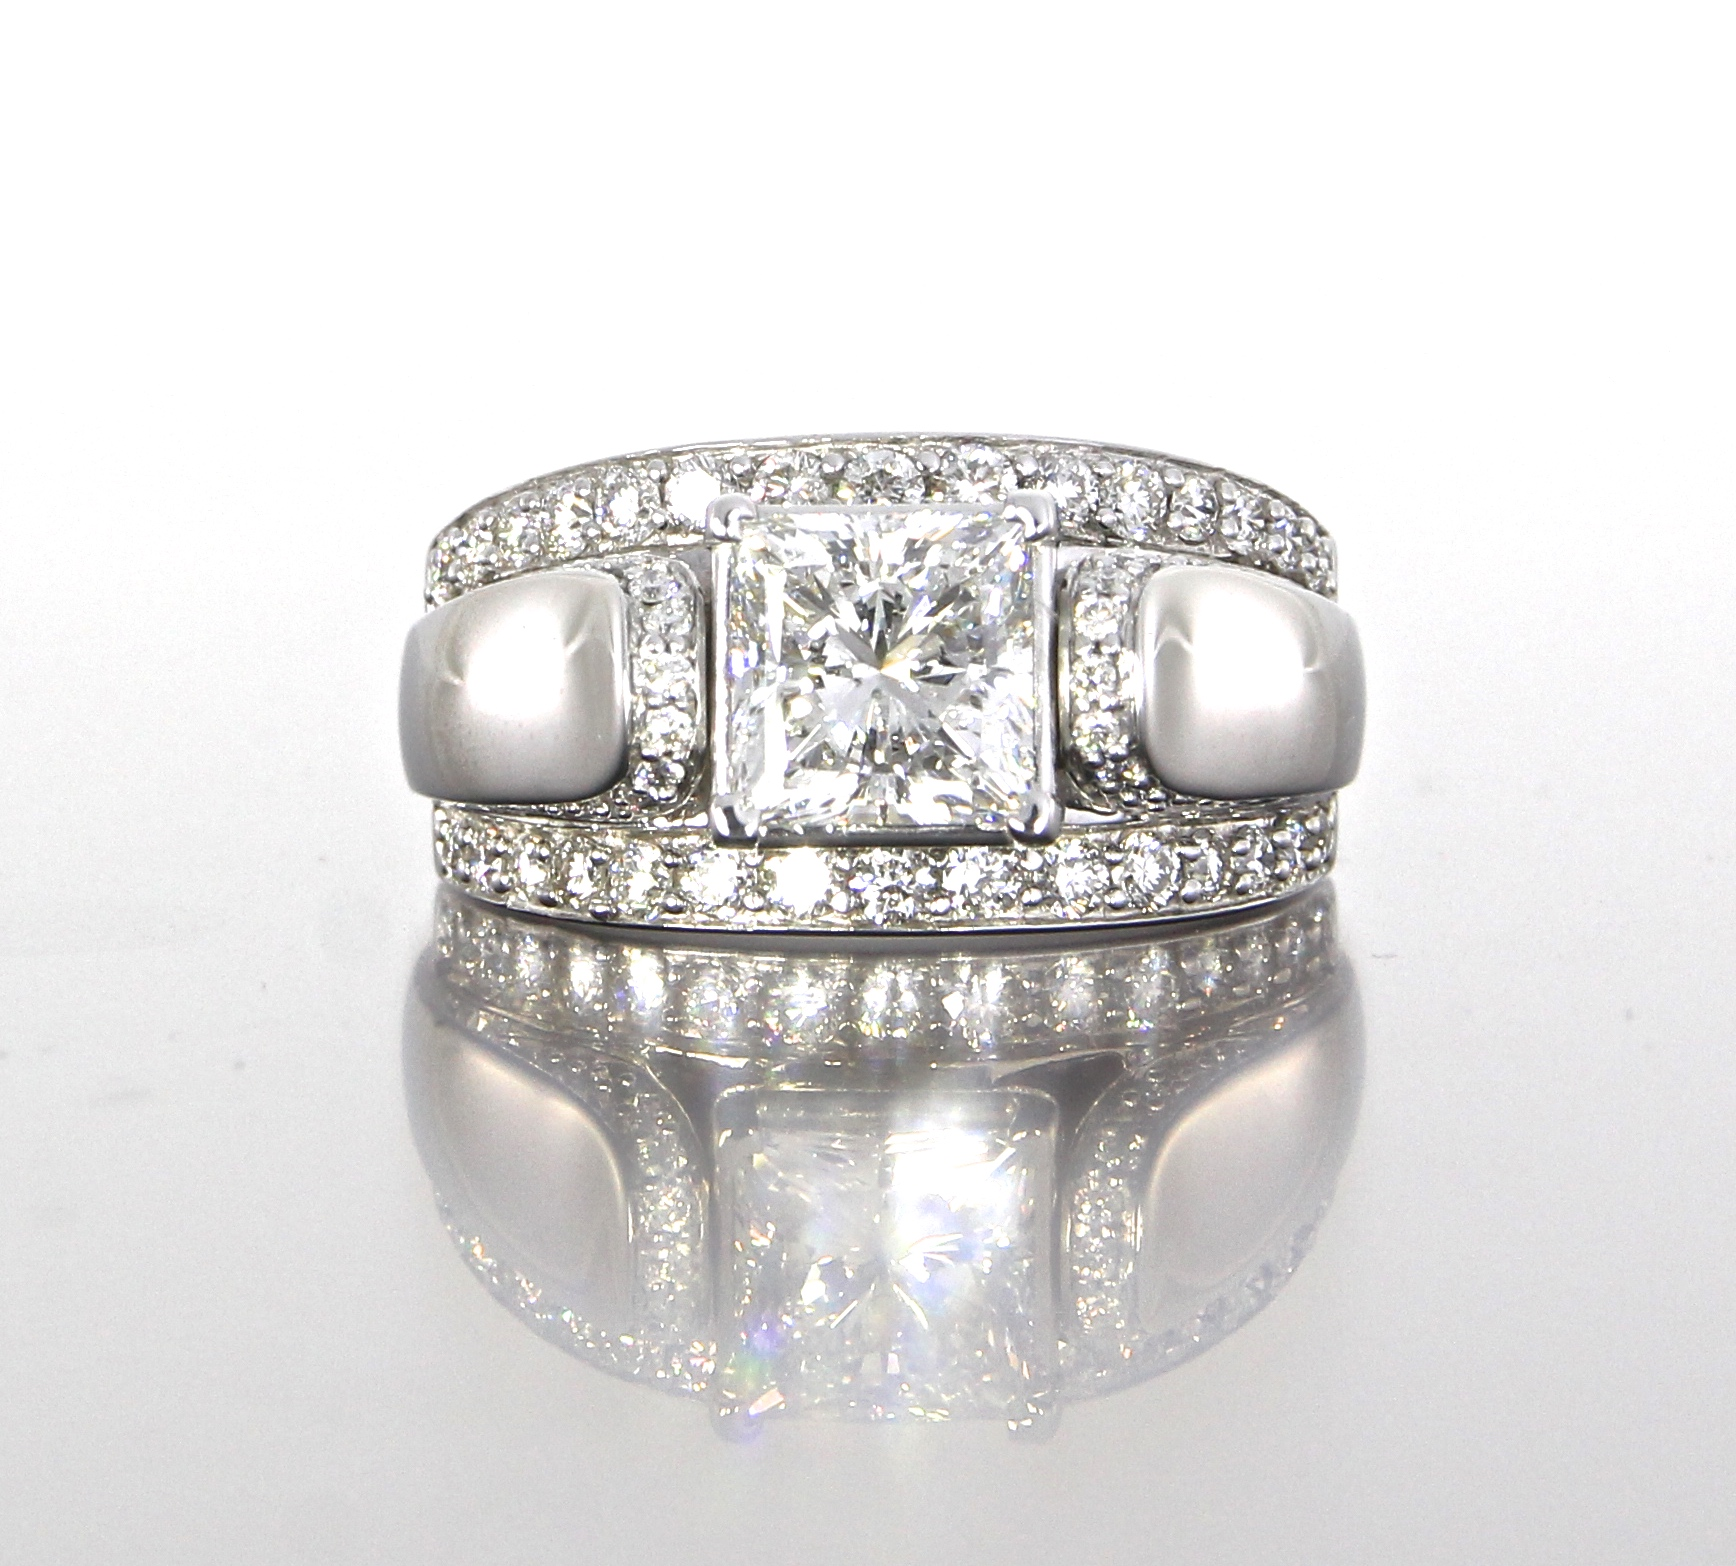 unique-ladies-princess-cut-diamond-engagement-ring-craft-revival-jewelry-store-grand-rapids.jpg